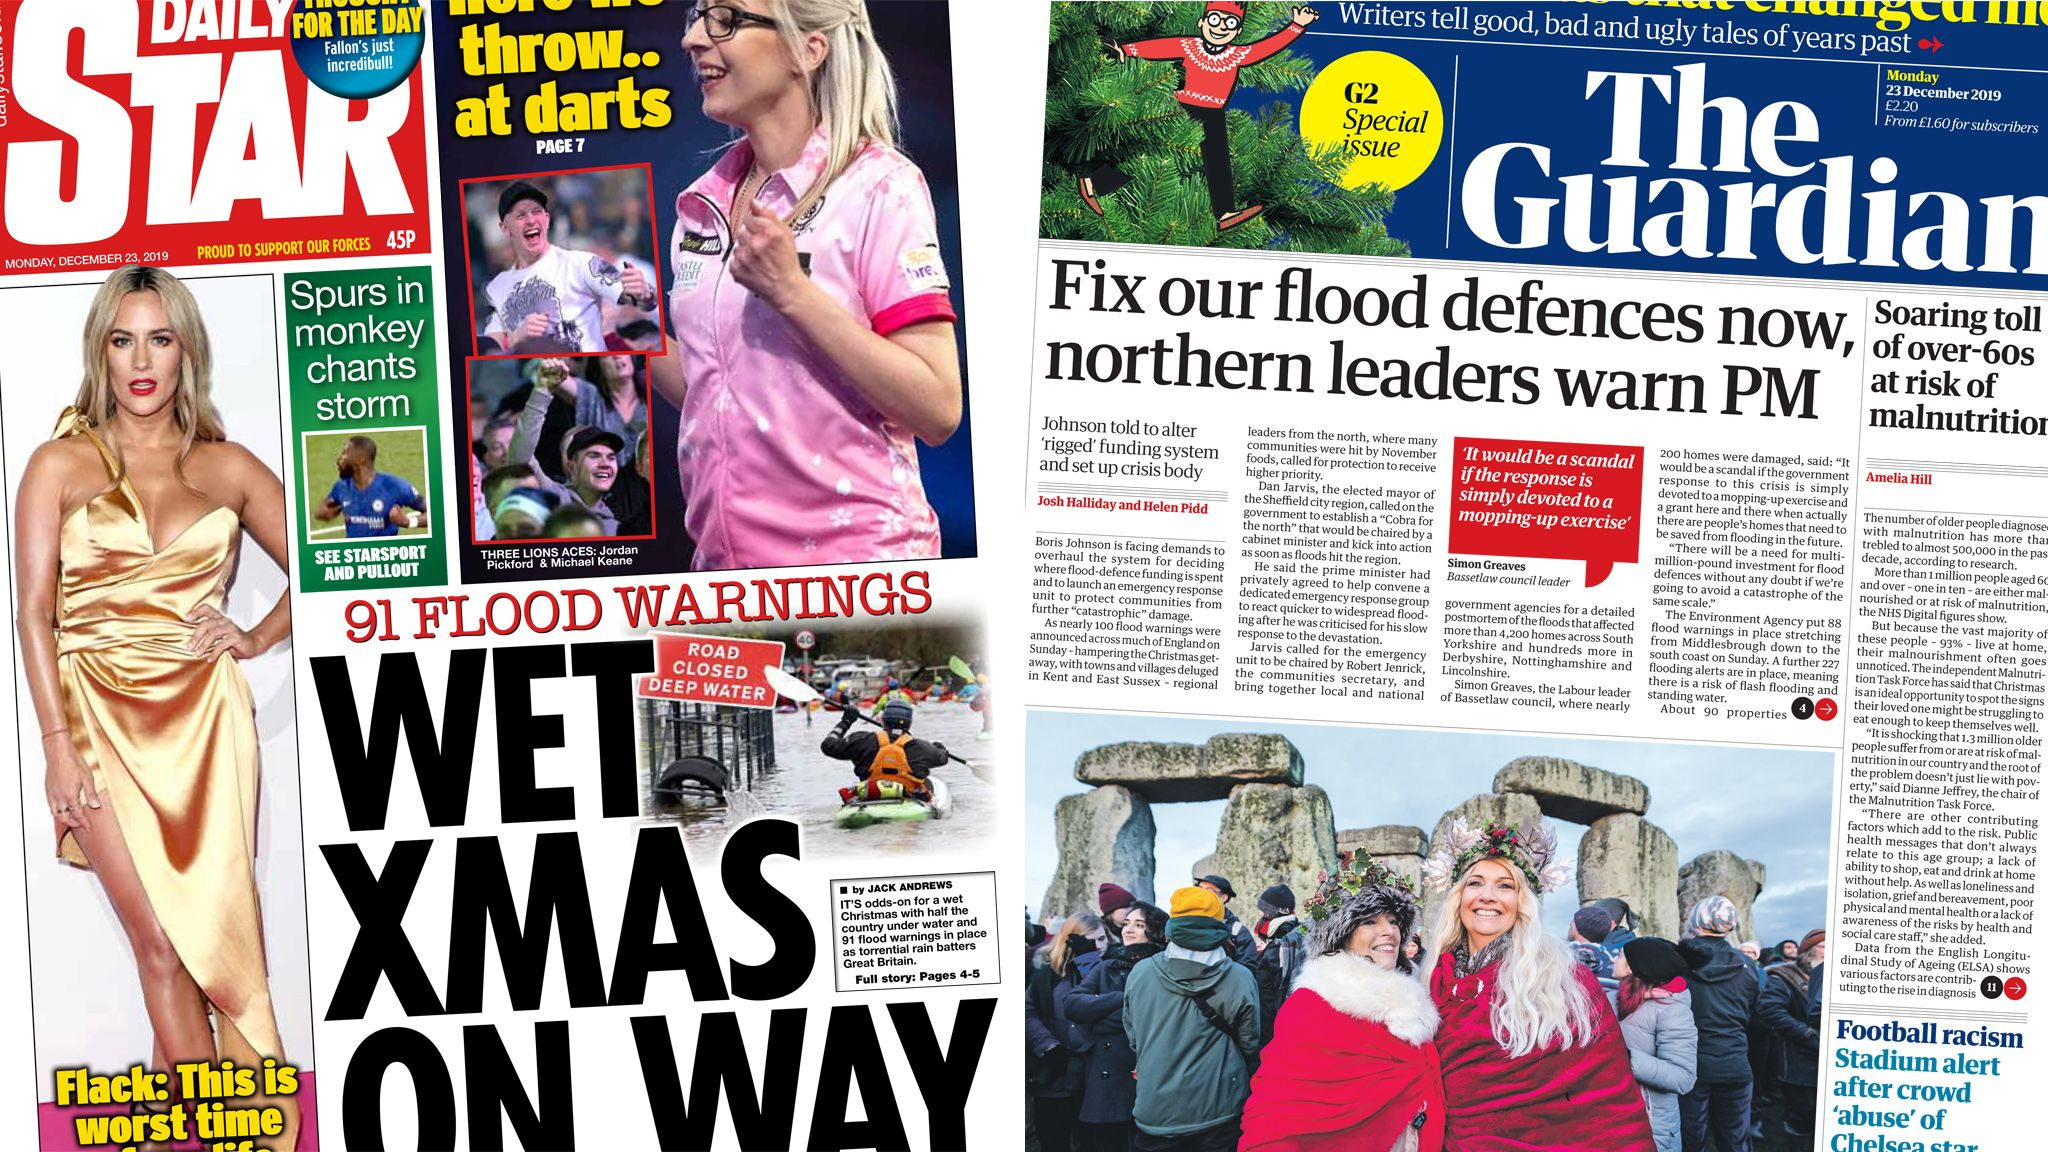 Composite image featuring the Daily Star and Guardian front pages